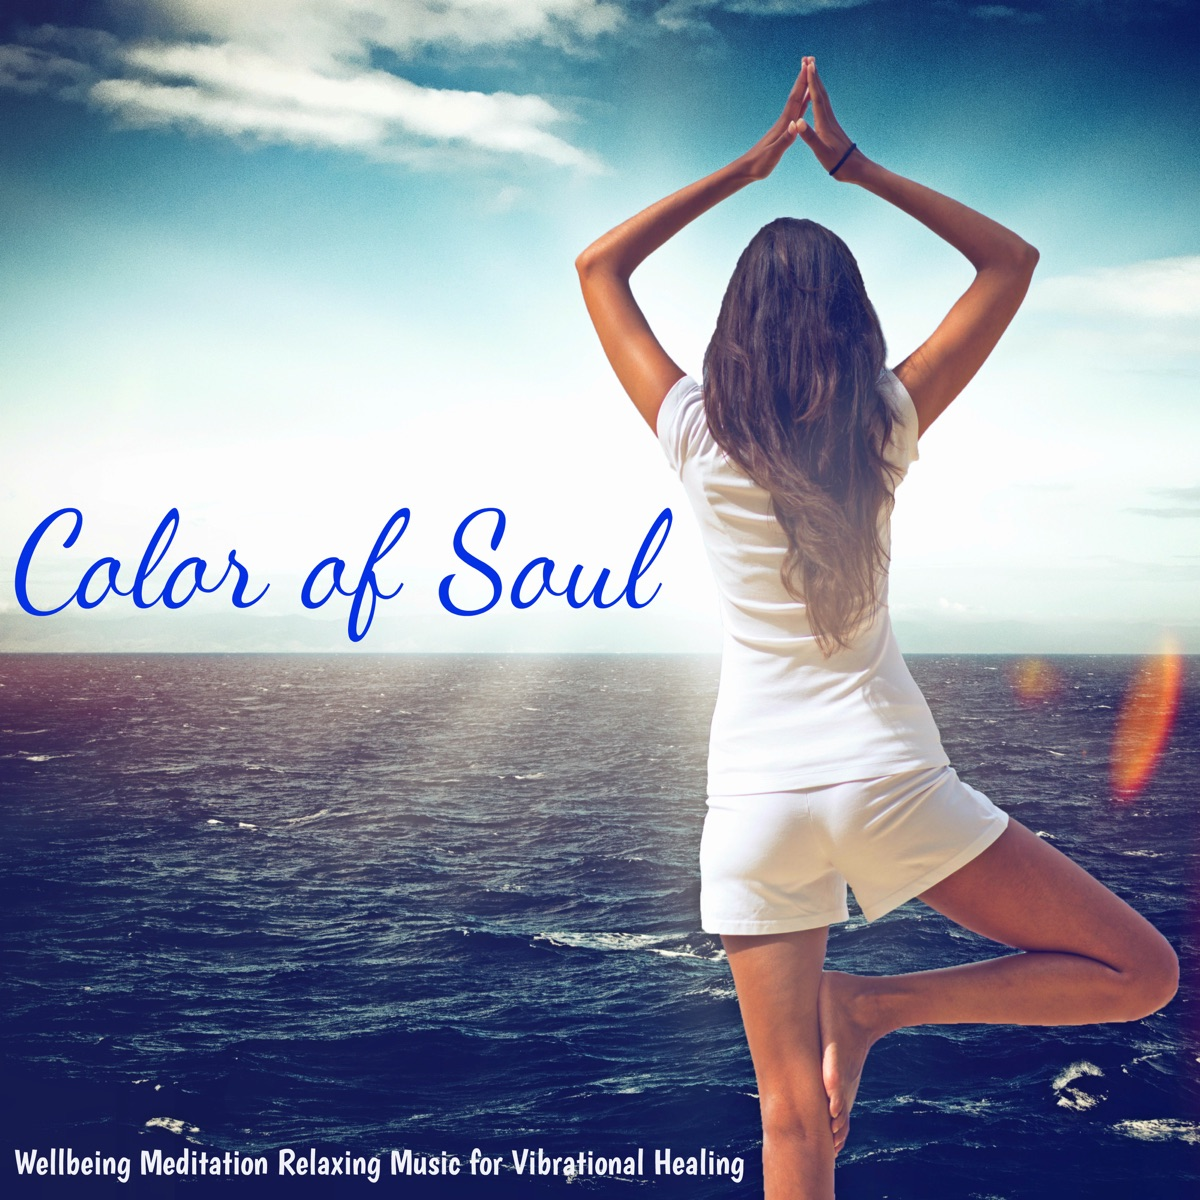 Color of Soul – Wellbeing Meditation Relaxing Music for